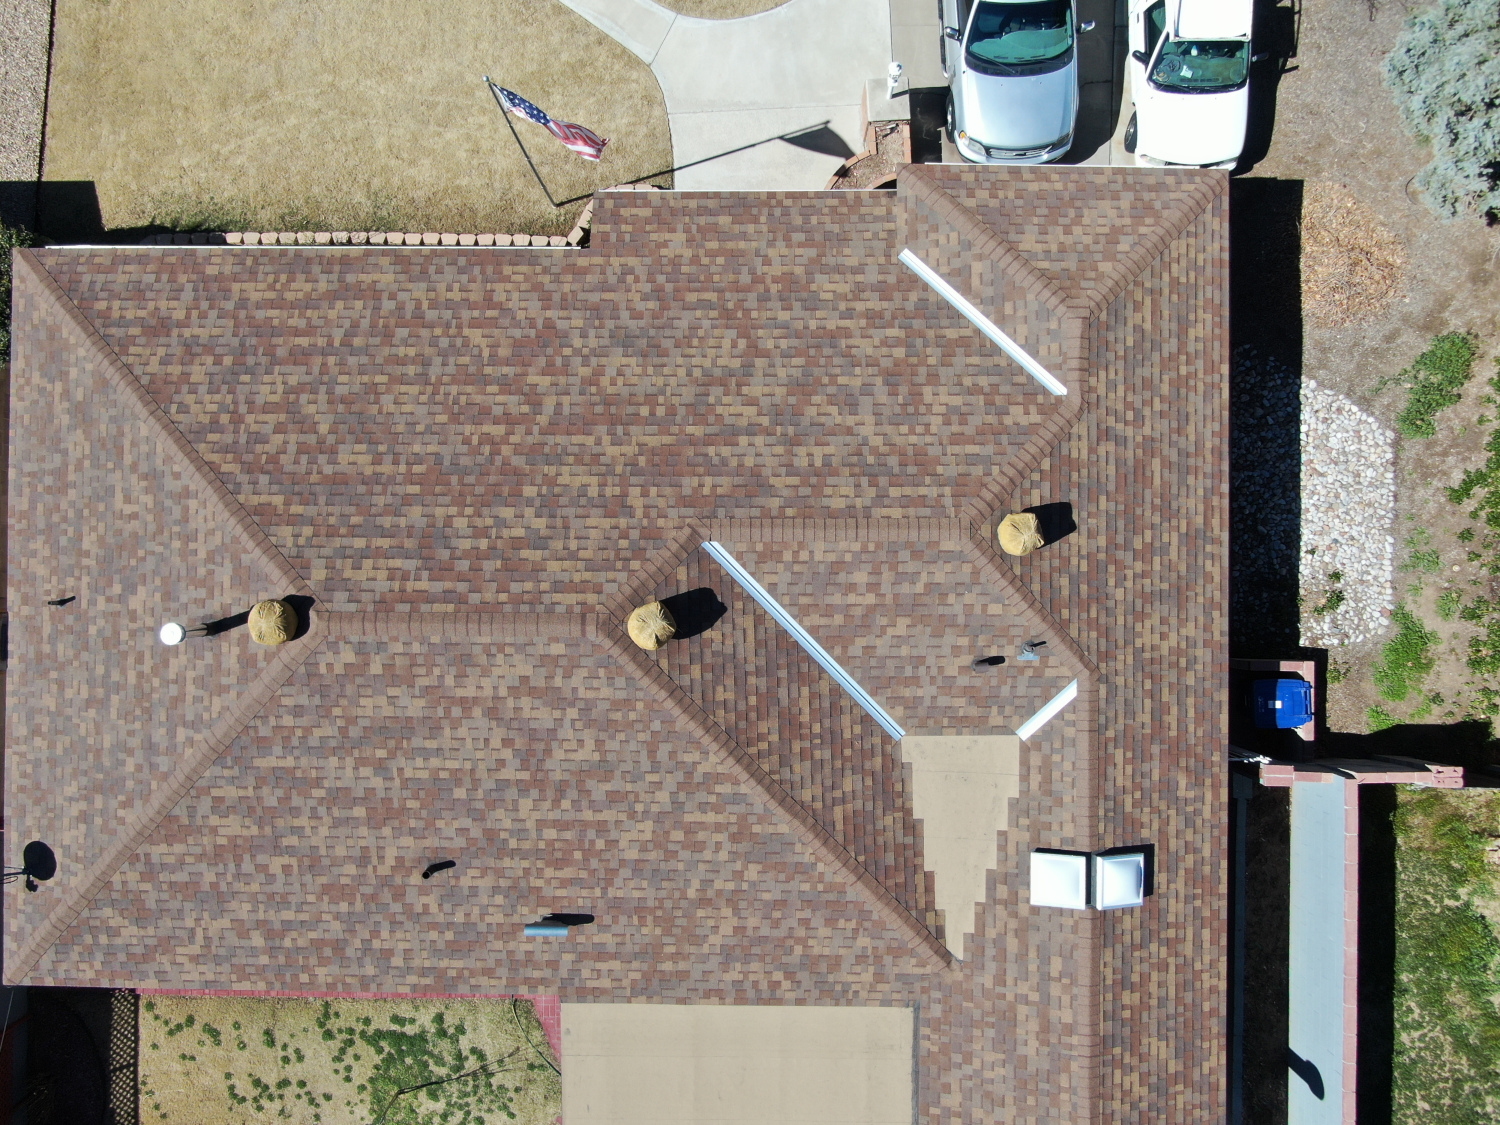 Finishing Touch Home Improvements 505-379-7705 roofing company albuquerque nm